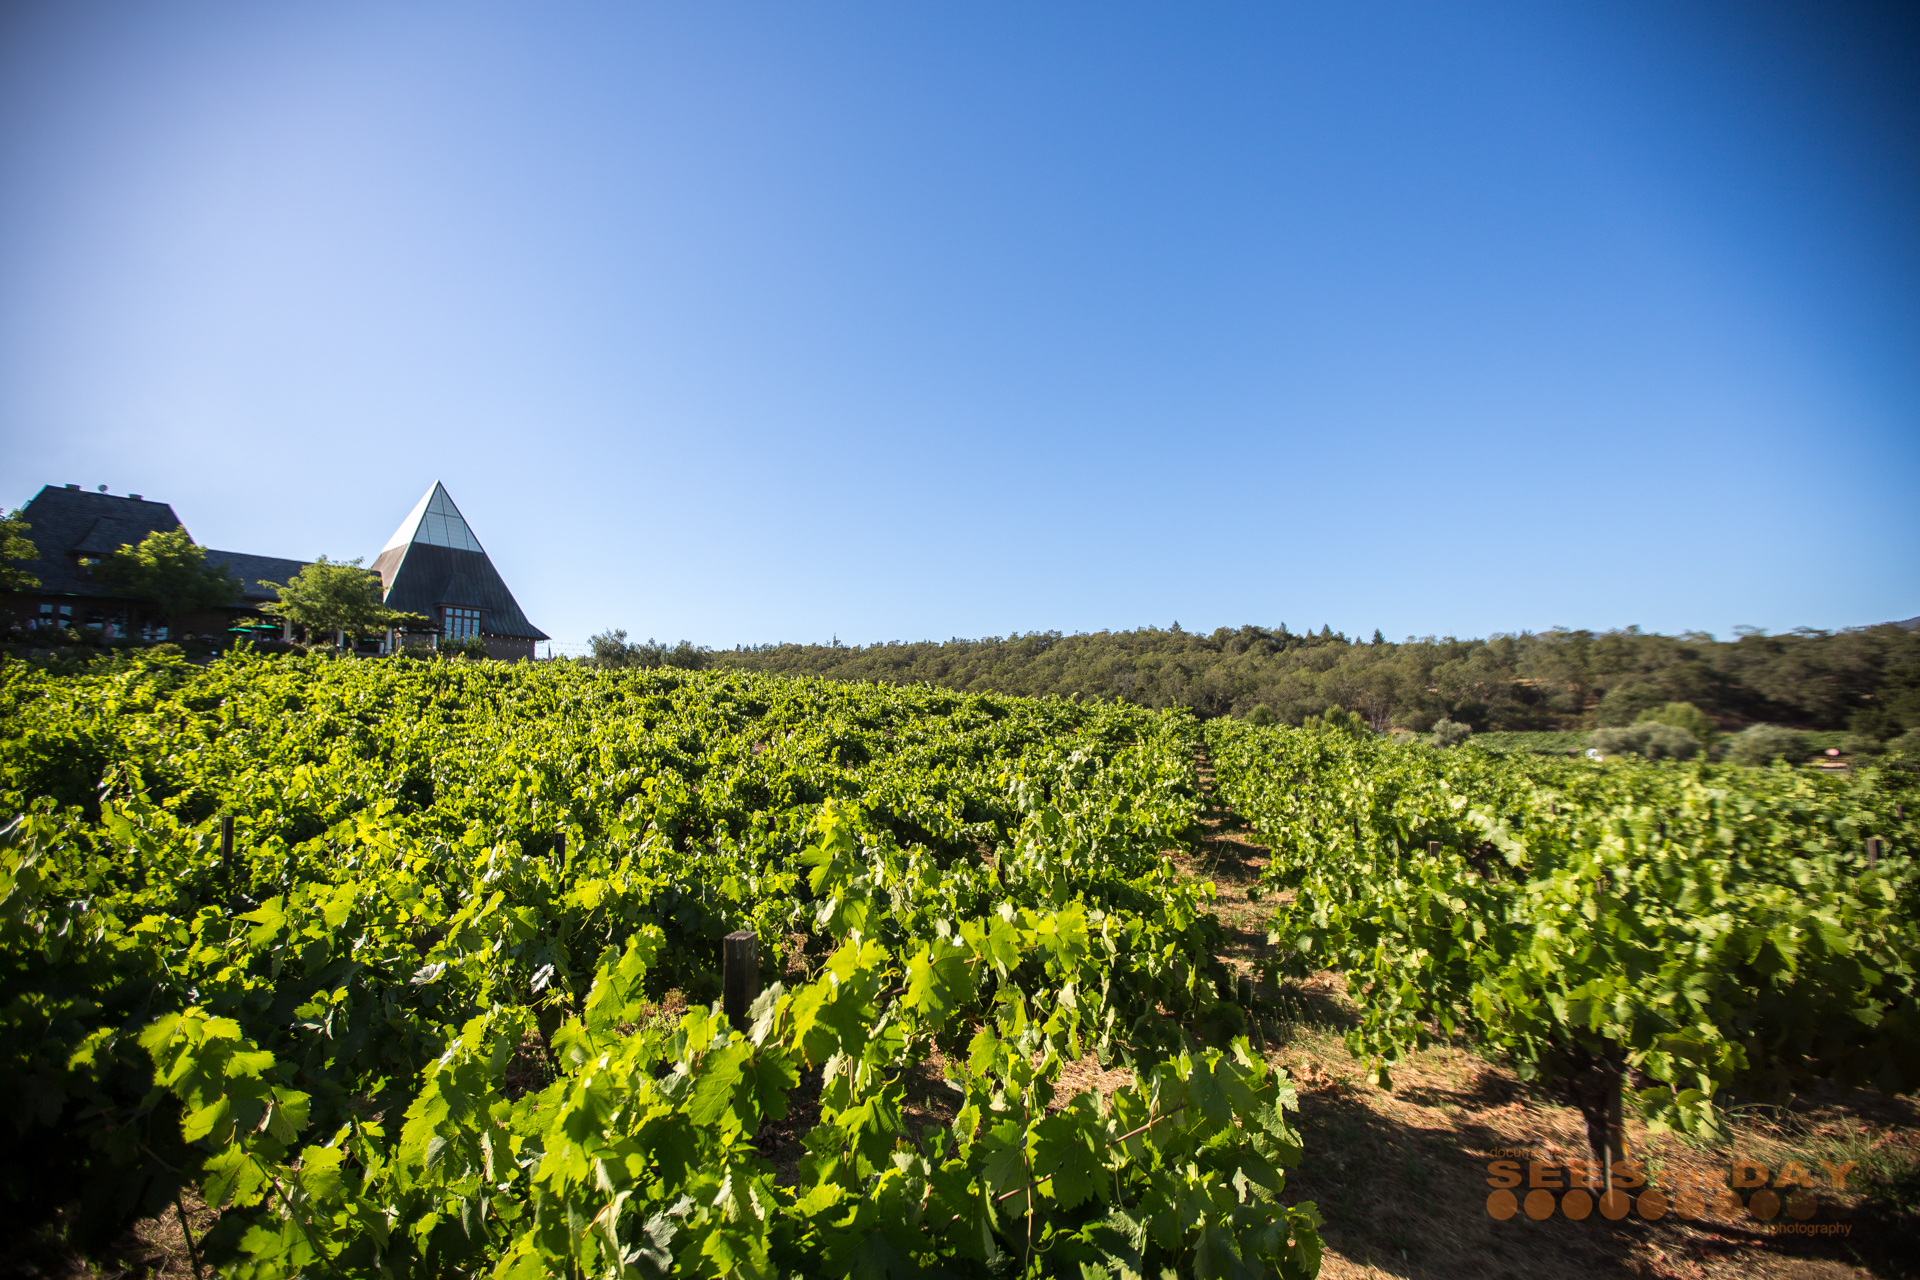 Francis_Ford_Coppola_Winery_Geyserville_Napa_024.jpg